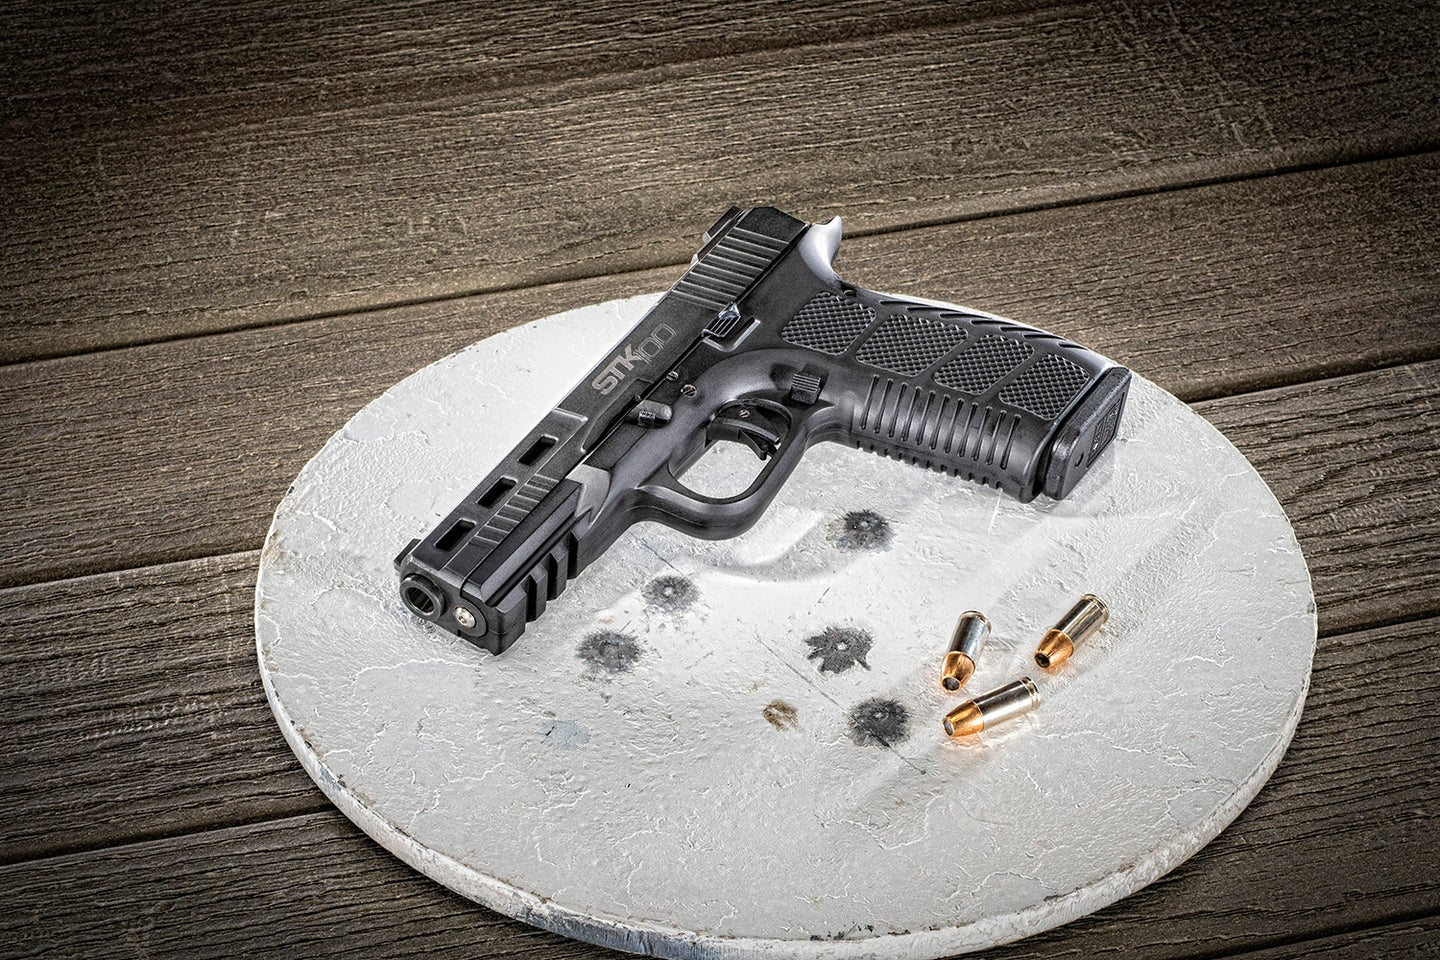 RIA STK100 competition pistol